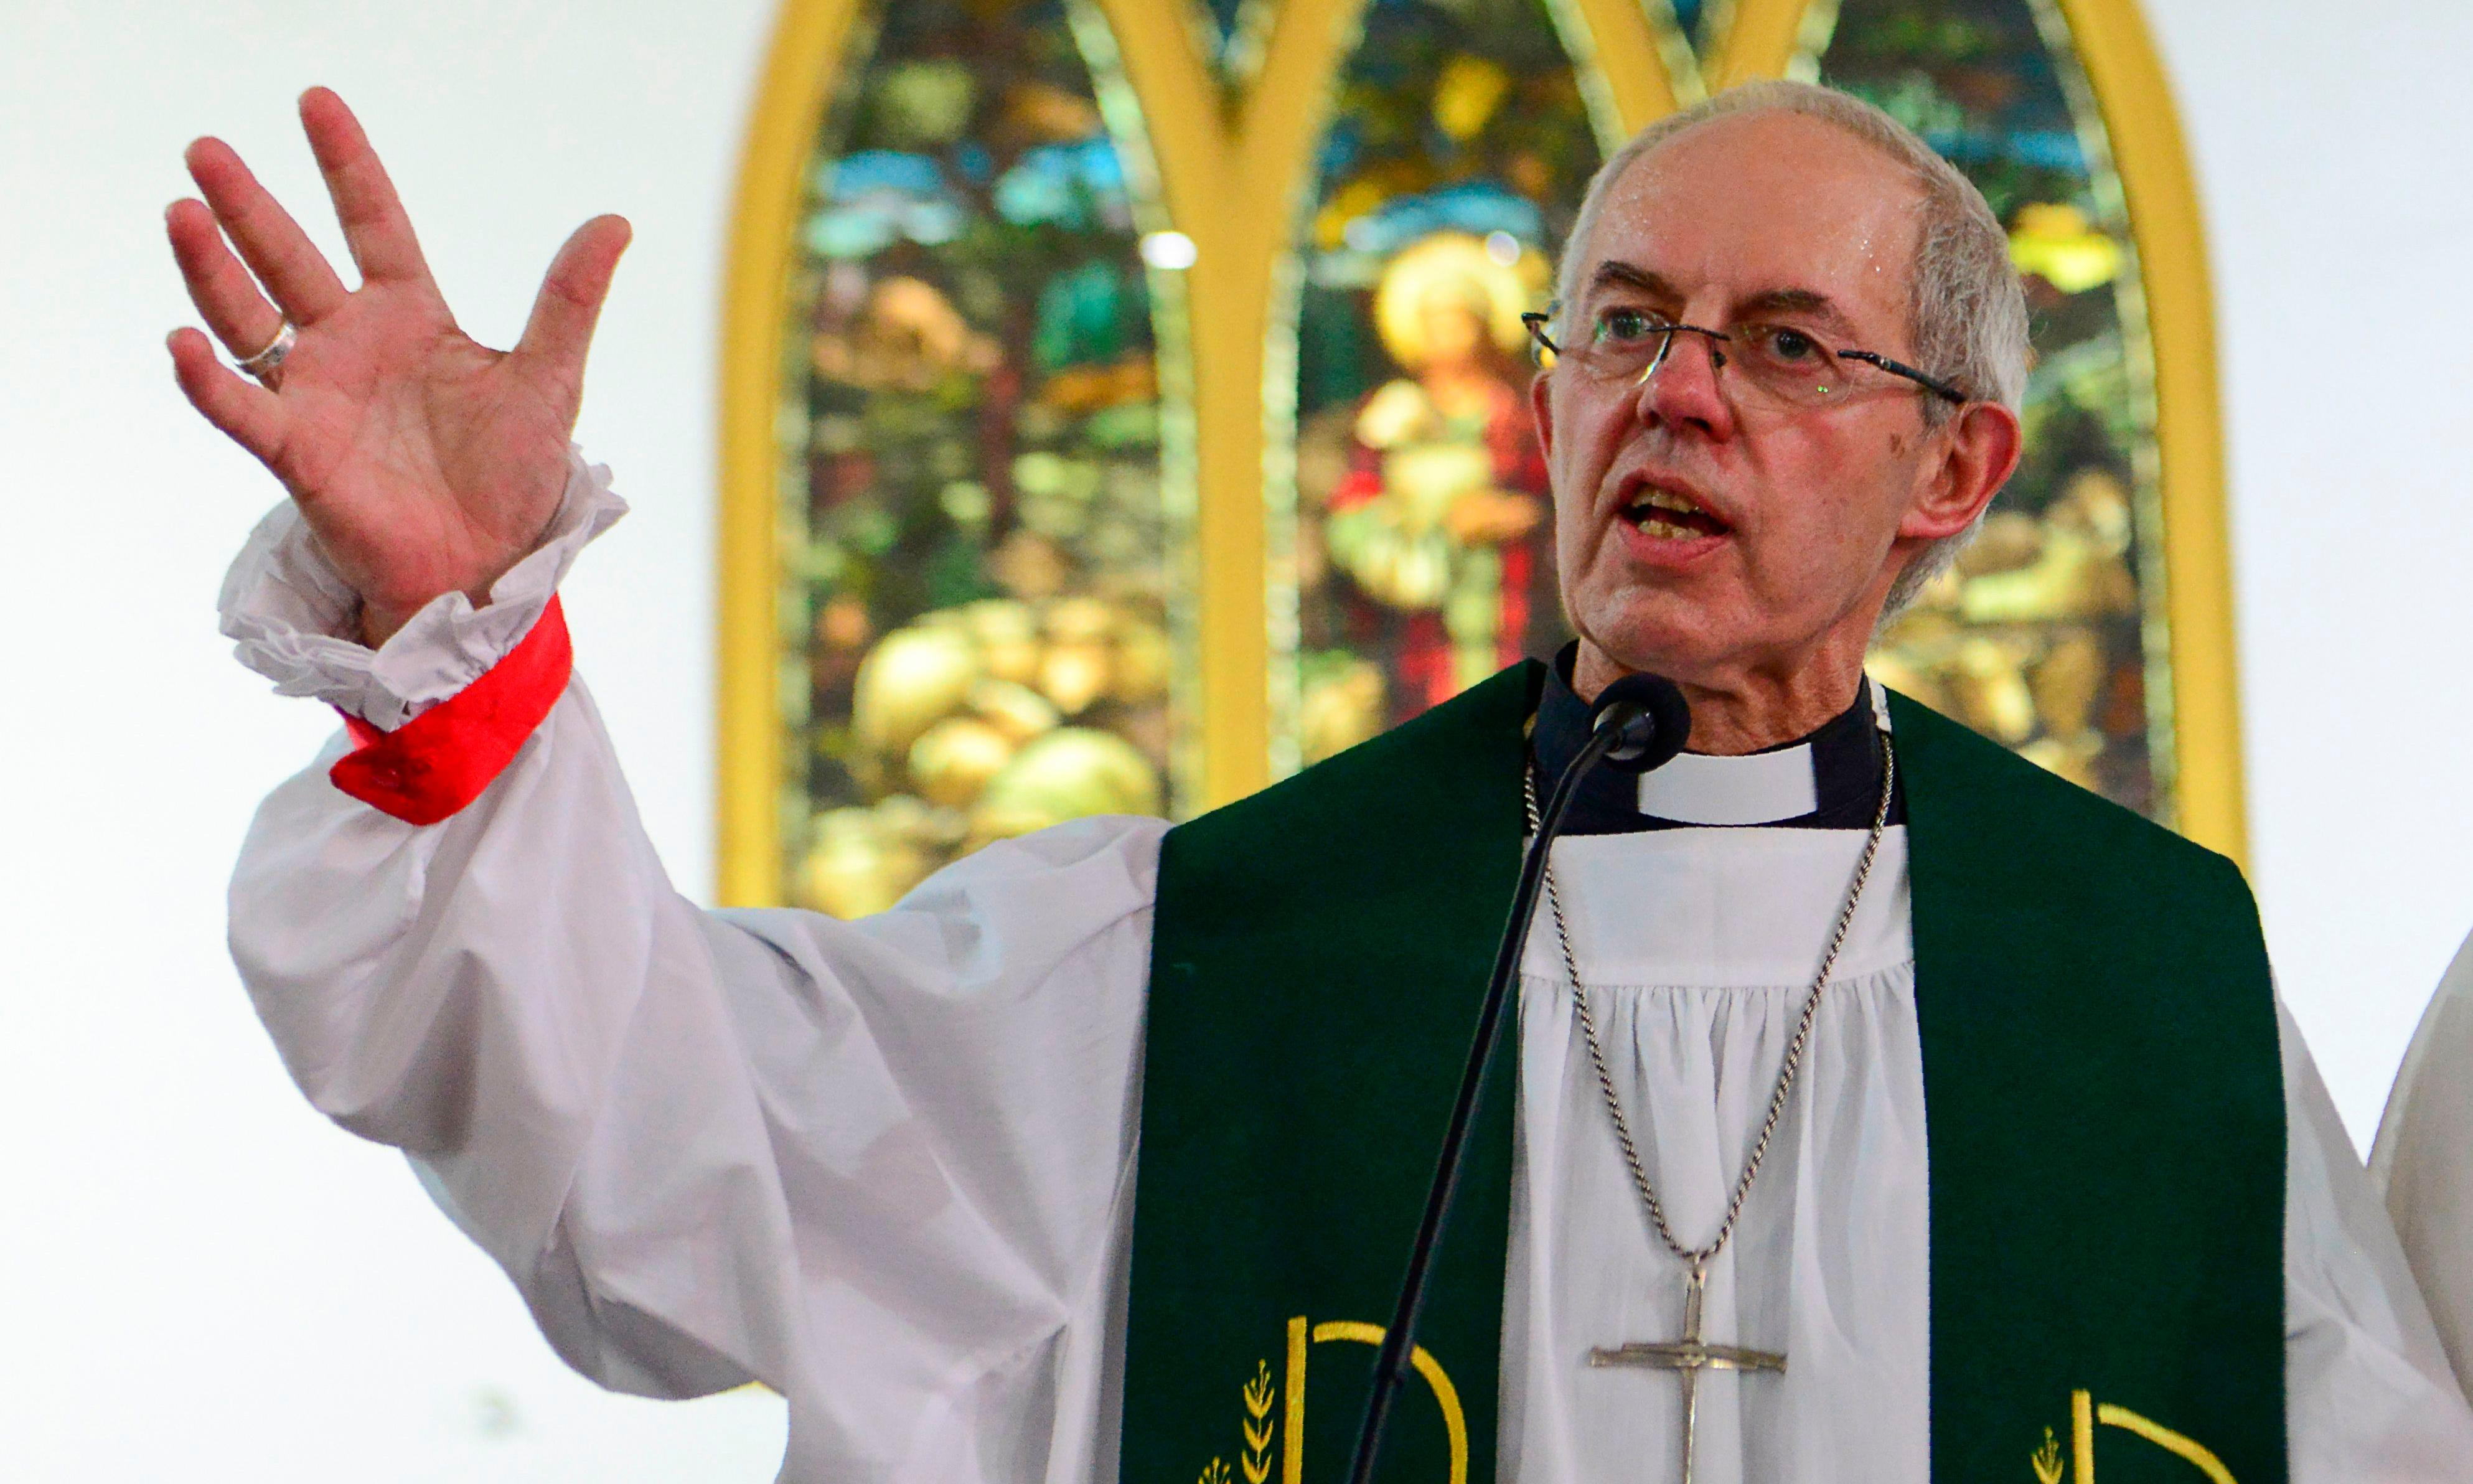 'You are not alone': Justin Welby reveals he sought help for depression